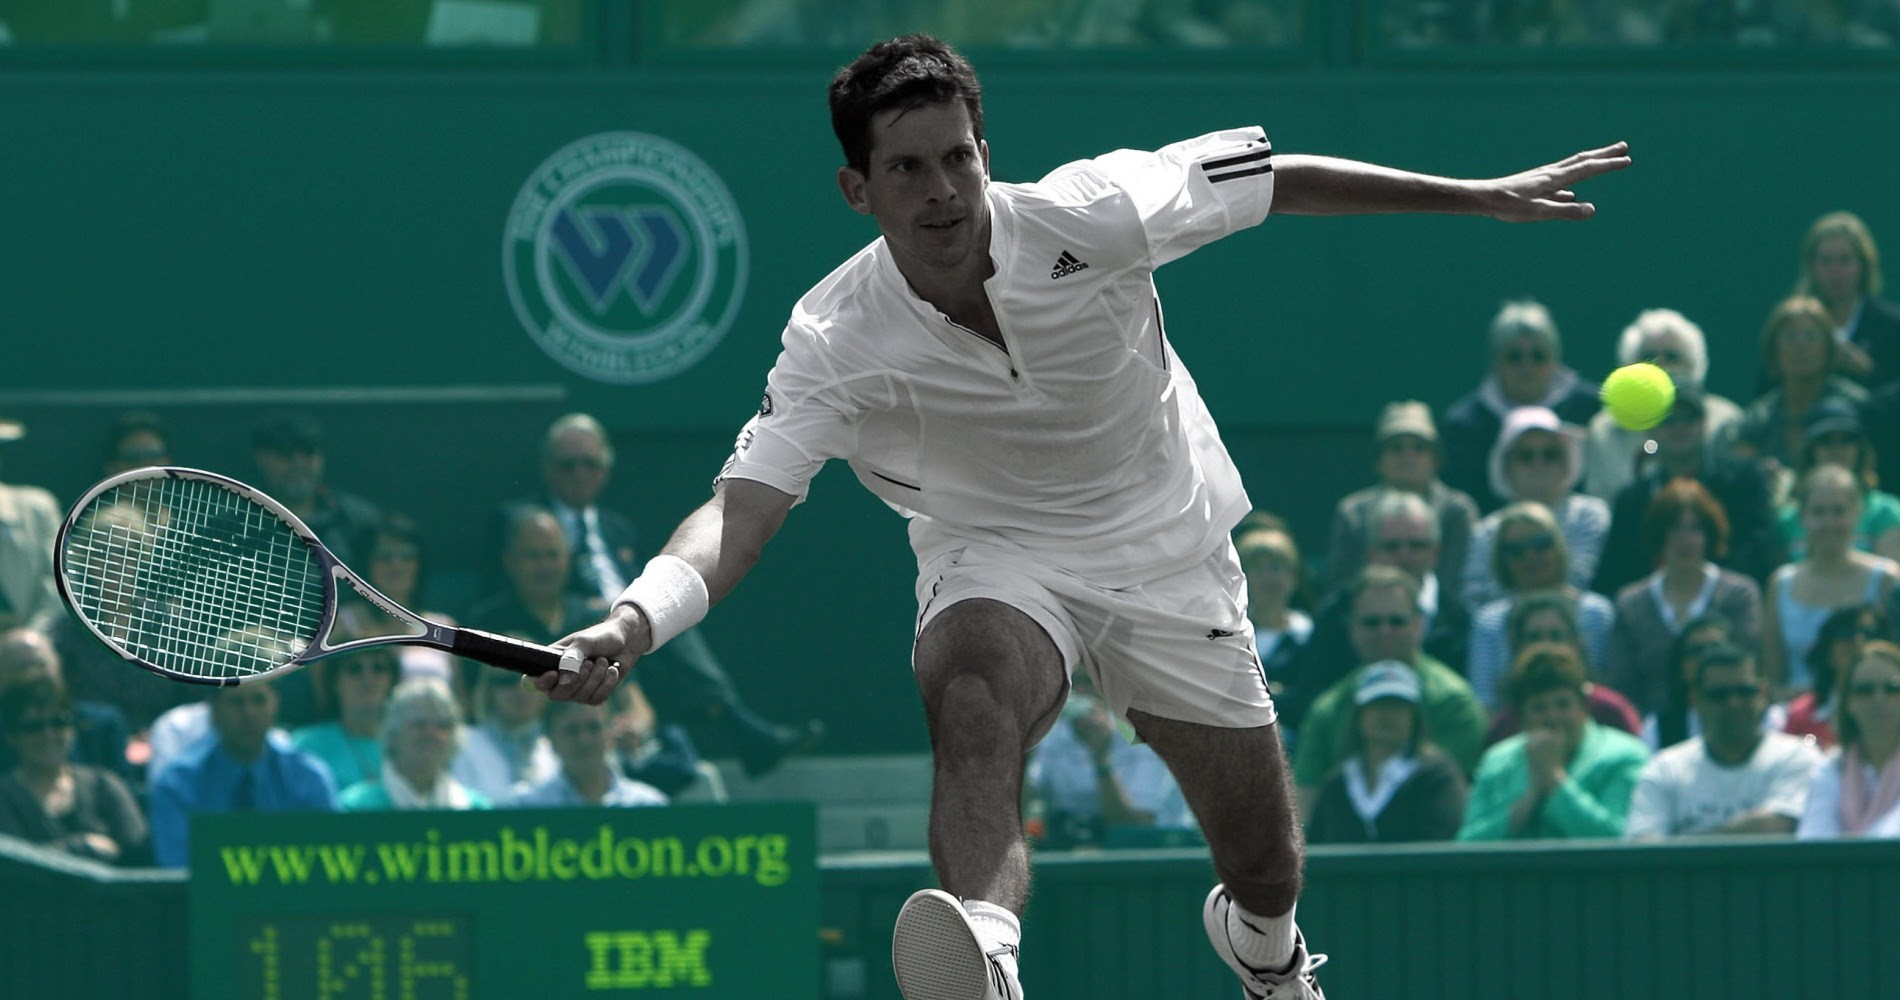 Tim Henman On This Day 06_28